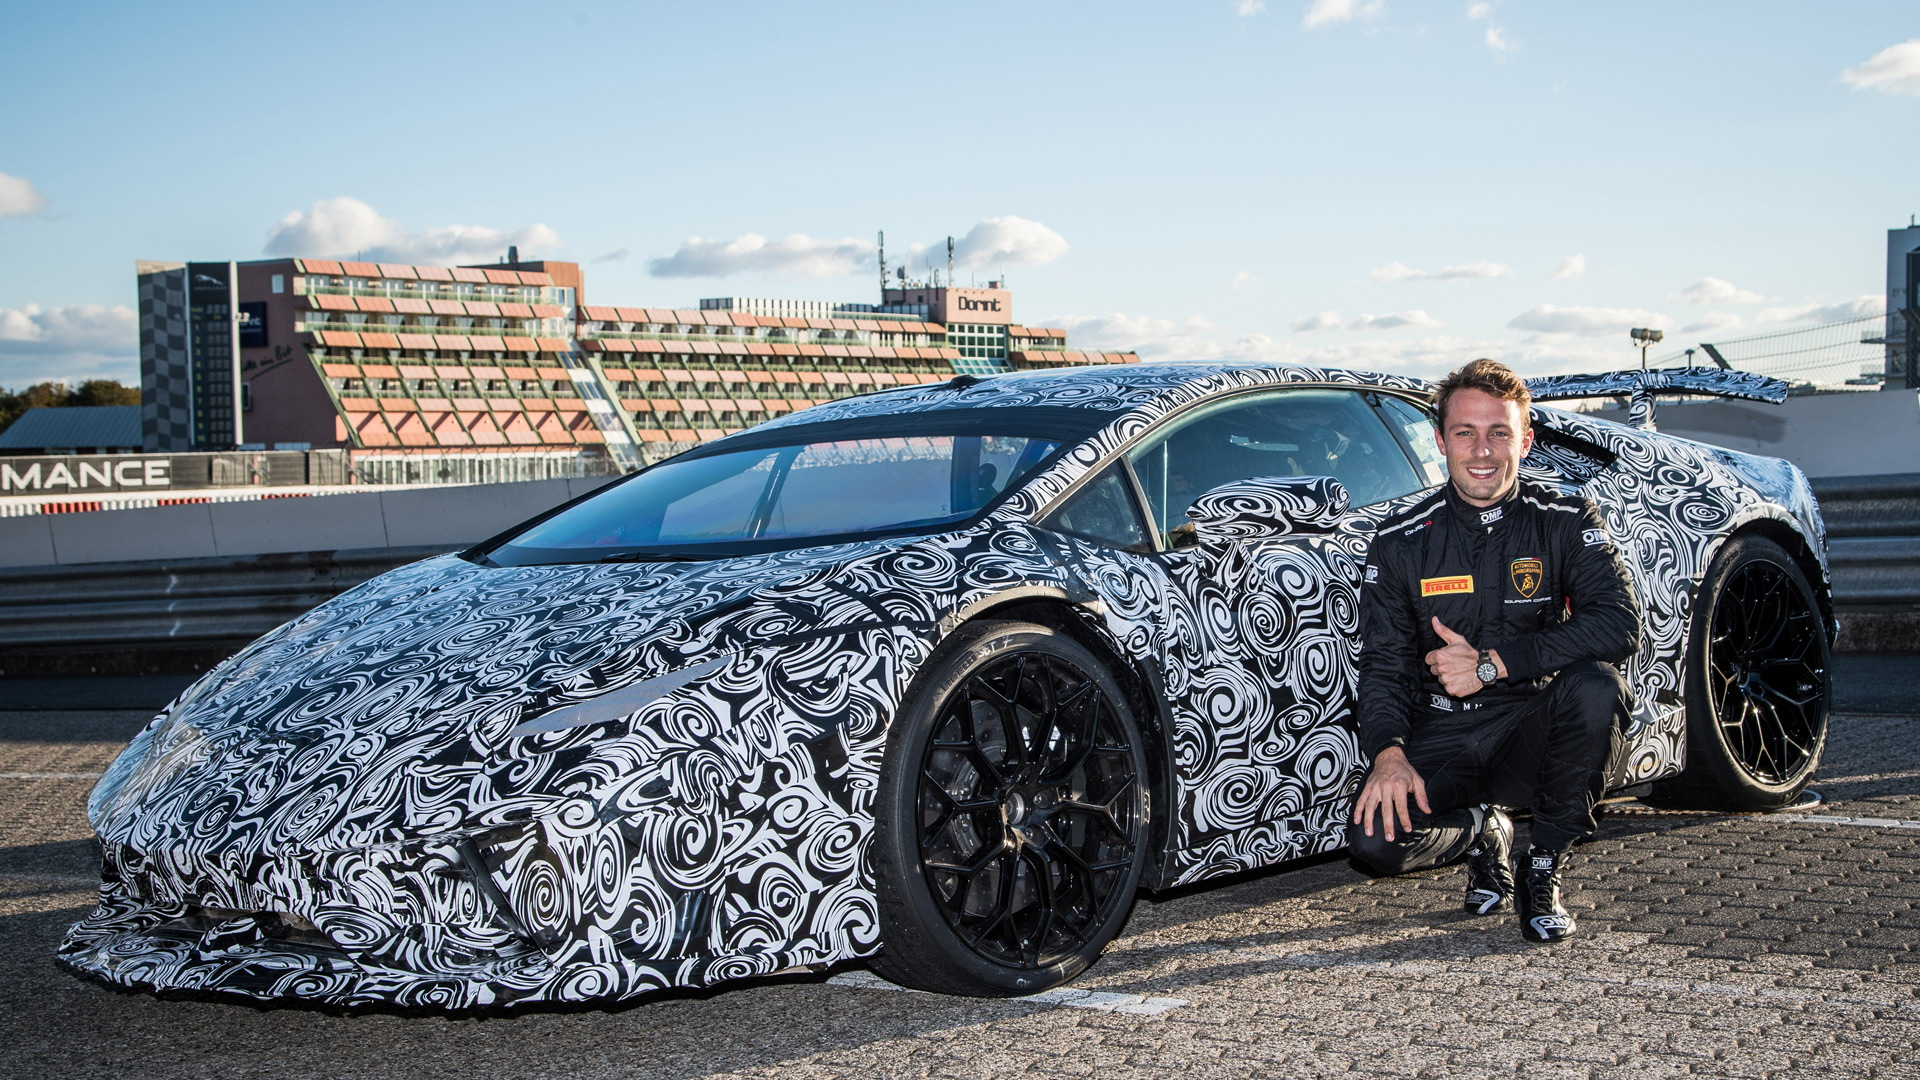 Marco Mapelli with the Lamborghini Huracán Performante at the Nürburgring